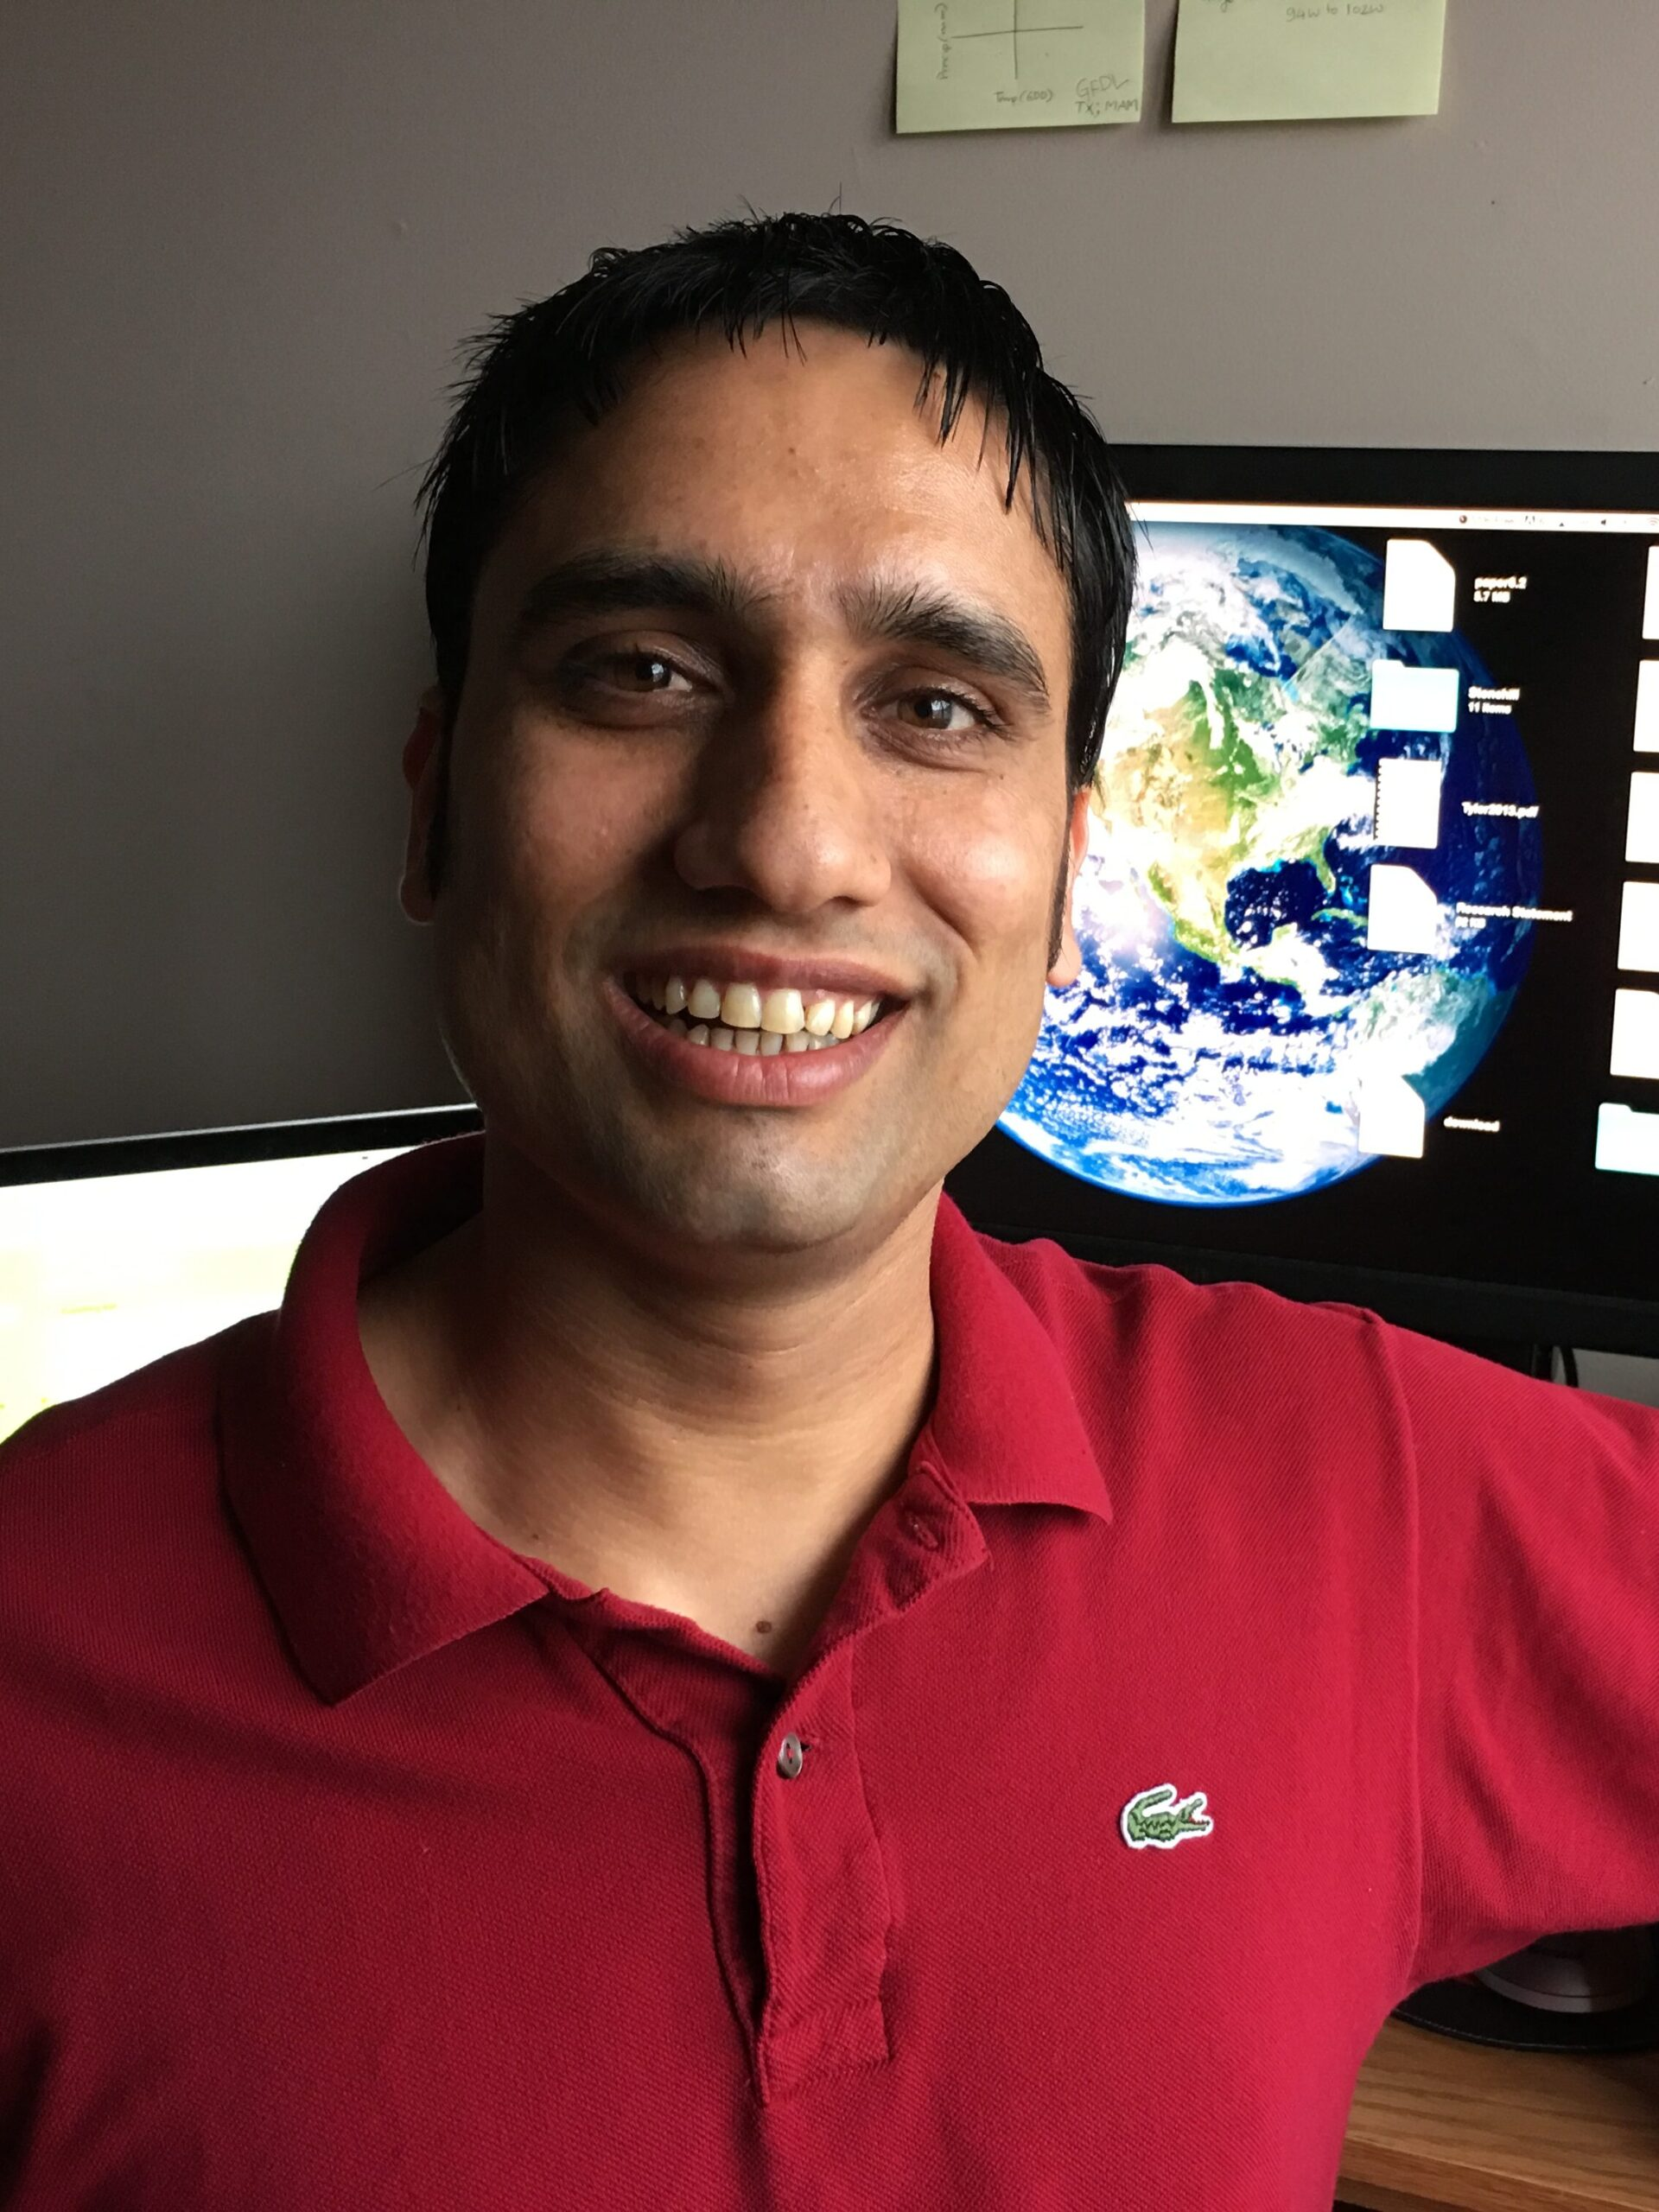 photo of Naresh wearing a red shirt and smiling at the camera in front of a computer with a desktop image of the world